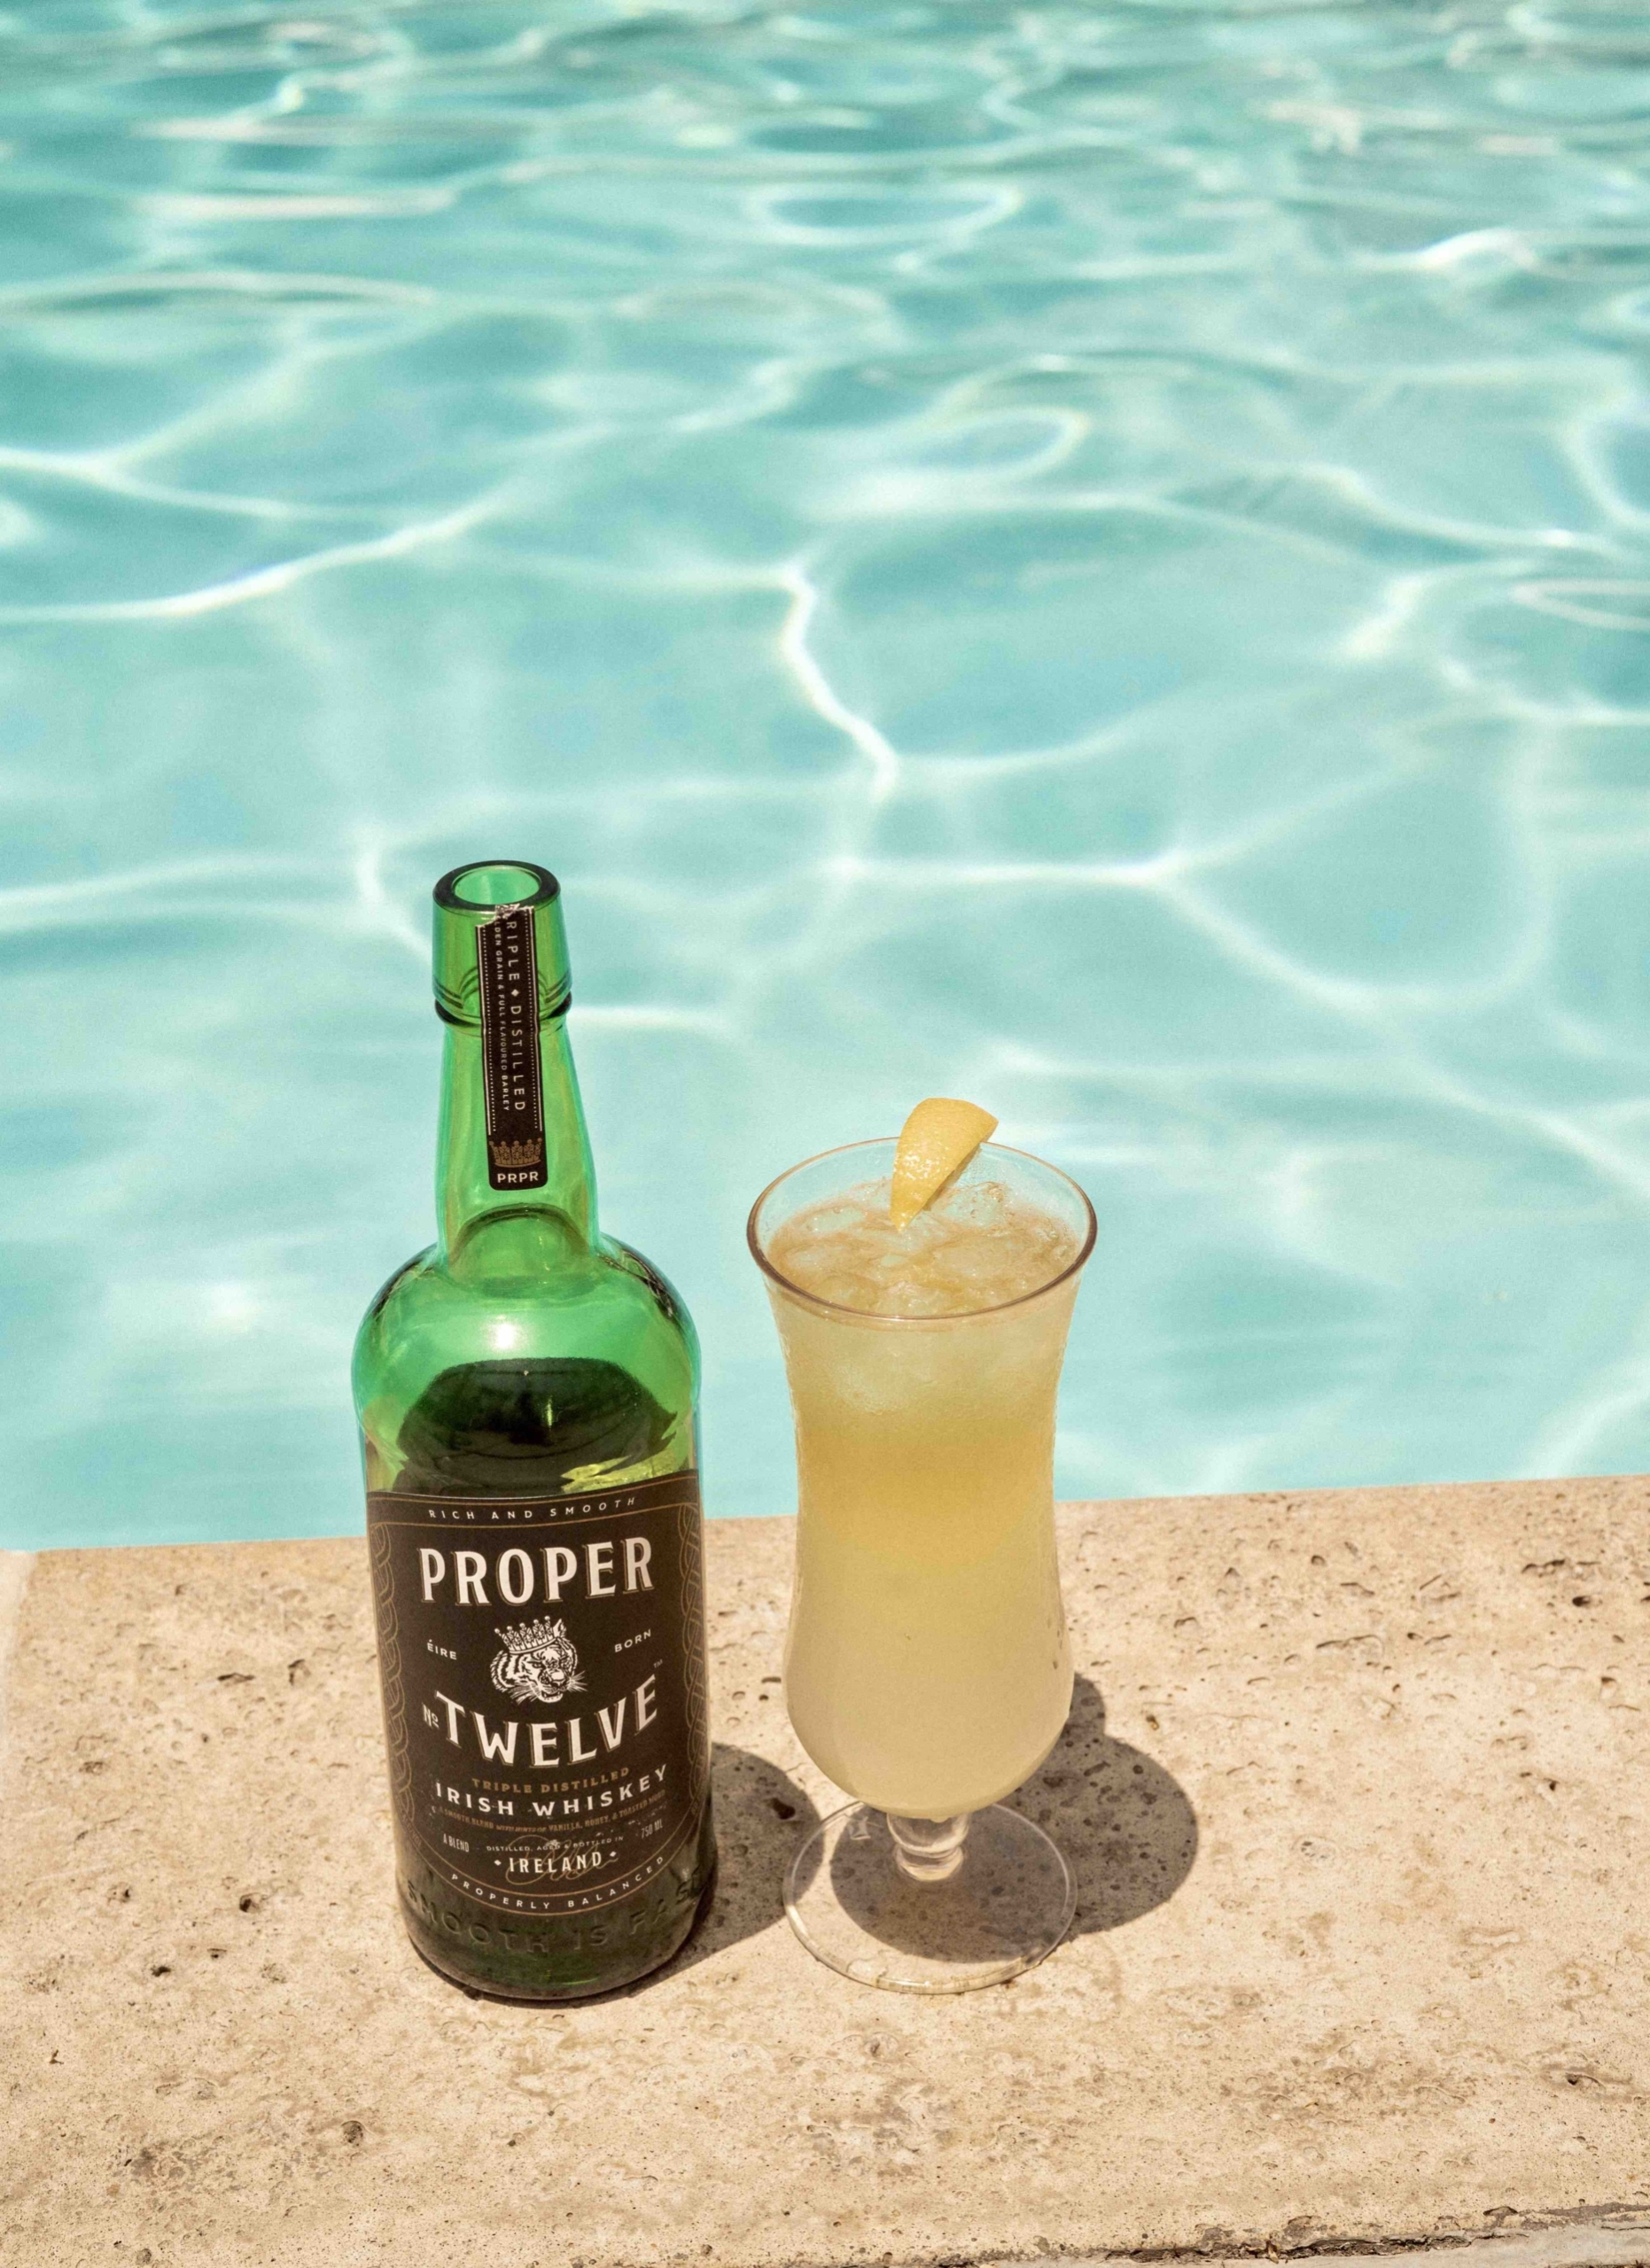 This Proper Lemonade Is Delicious And Extremely Effective Whiskey Cocktail To Enjoy The Last Days of Summer